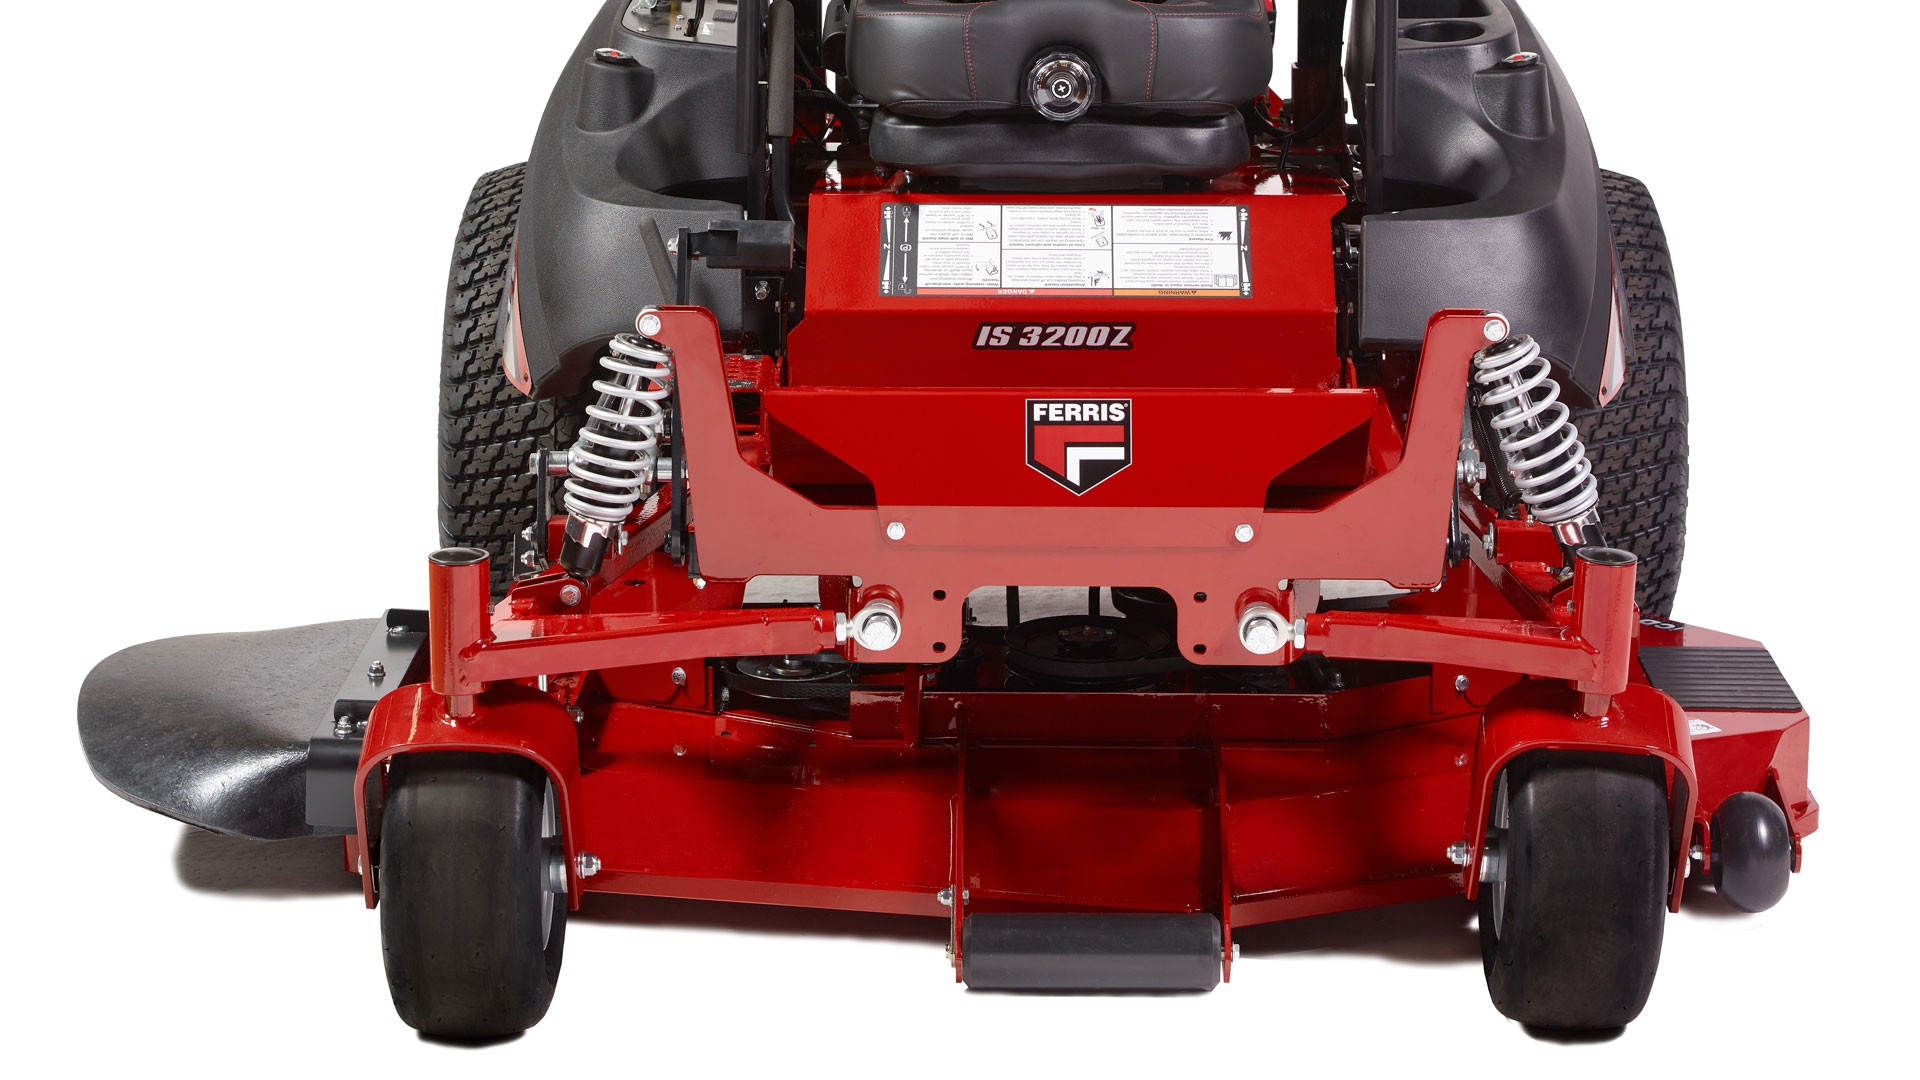 Diagram Of A 2019 Ferris 400s Mower is 700z Zero Turn Mowers Of Diagram Of A 2019 Ferris 400s Mower